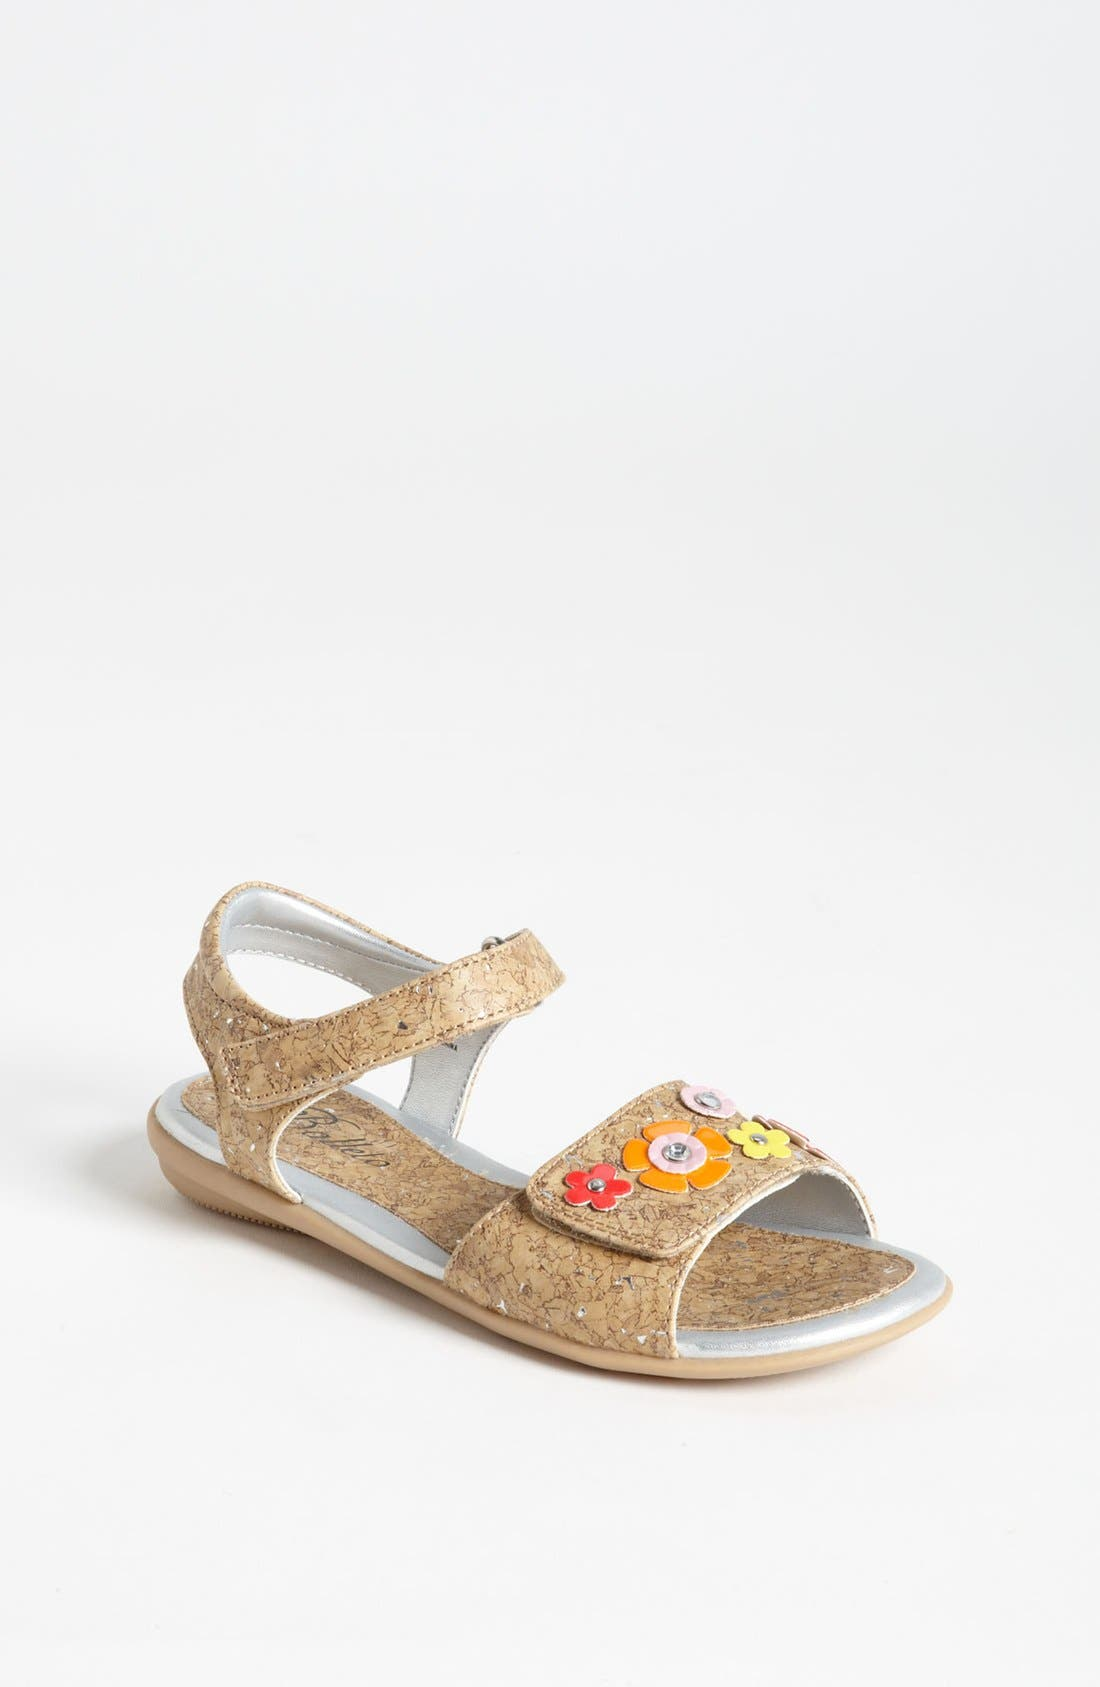 Main Image - Balleto 'Corky' Sandal (Walker, Toddler, Little Kid & Big Kid)